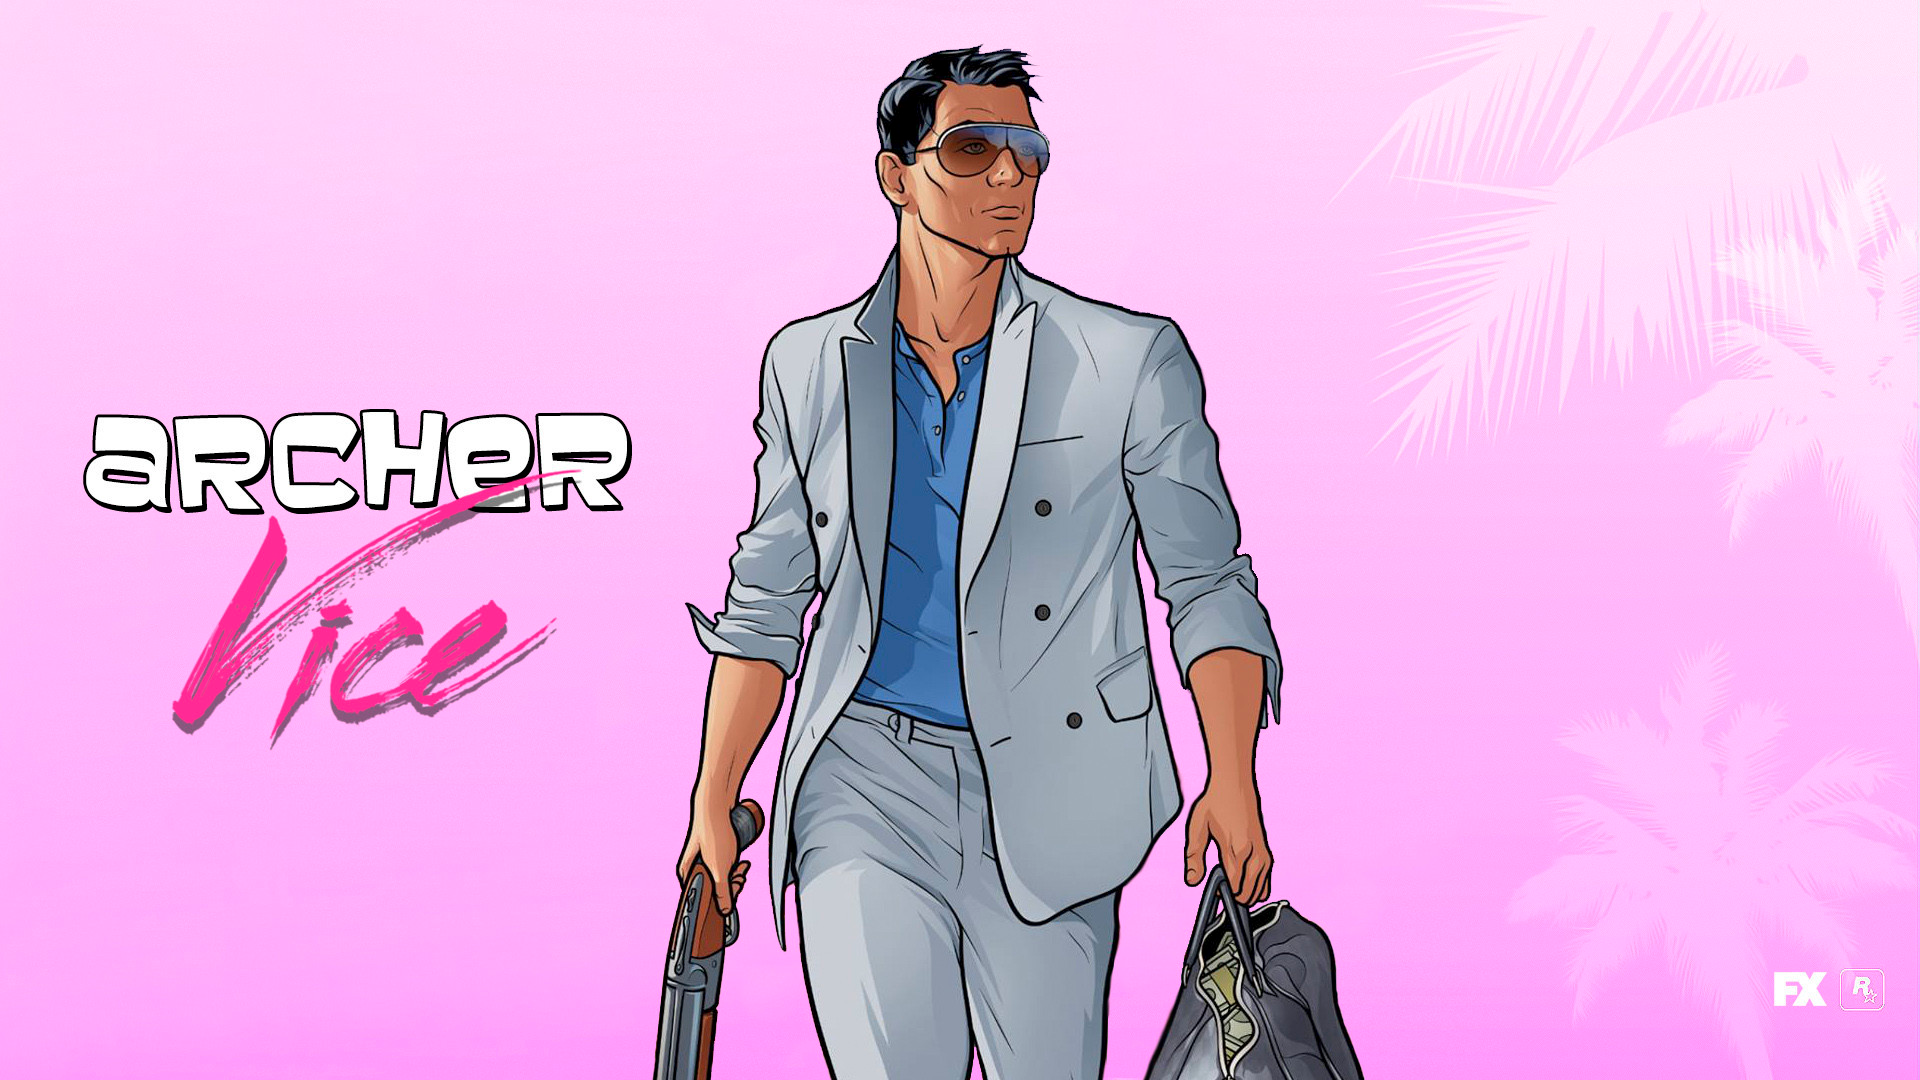 ARCHER WALLPAPER 6